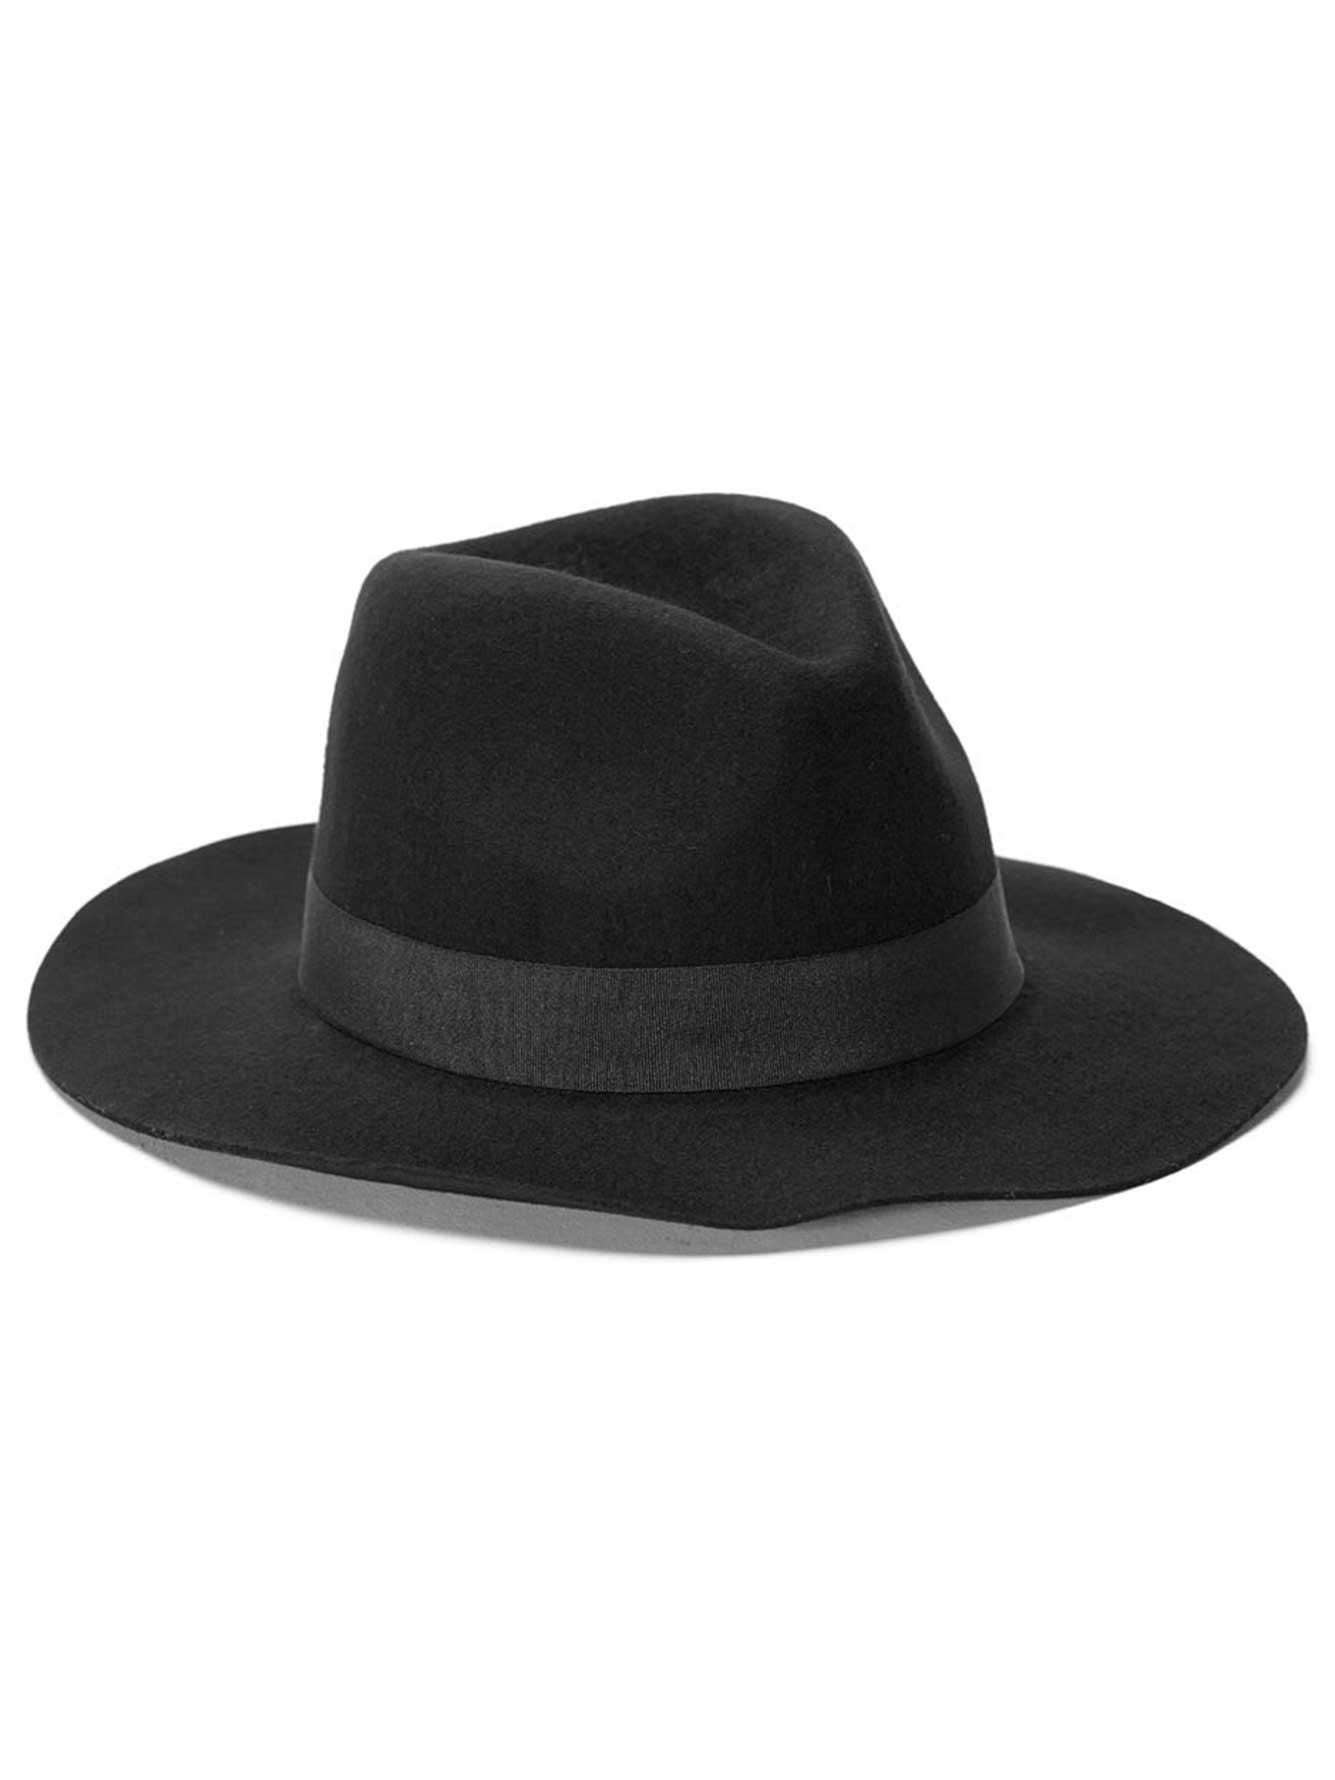 Shop Boot Barn's large assortment of Men's Wool Felt Western Hats from brands including: Bailey, Bullhide, Stetson, and more! Select your Store. Find Another Store USE MY LOCATION. Find Store. Stetson Black Hawk Crushable Wool Hat $ Bullhide Men's Back Roads 6X Wool Hat .